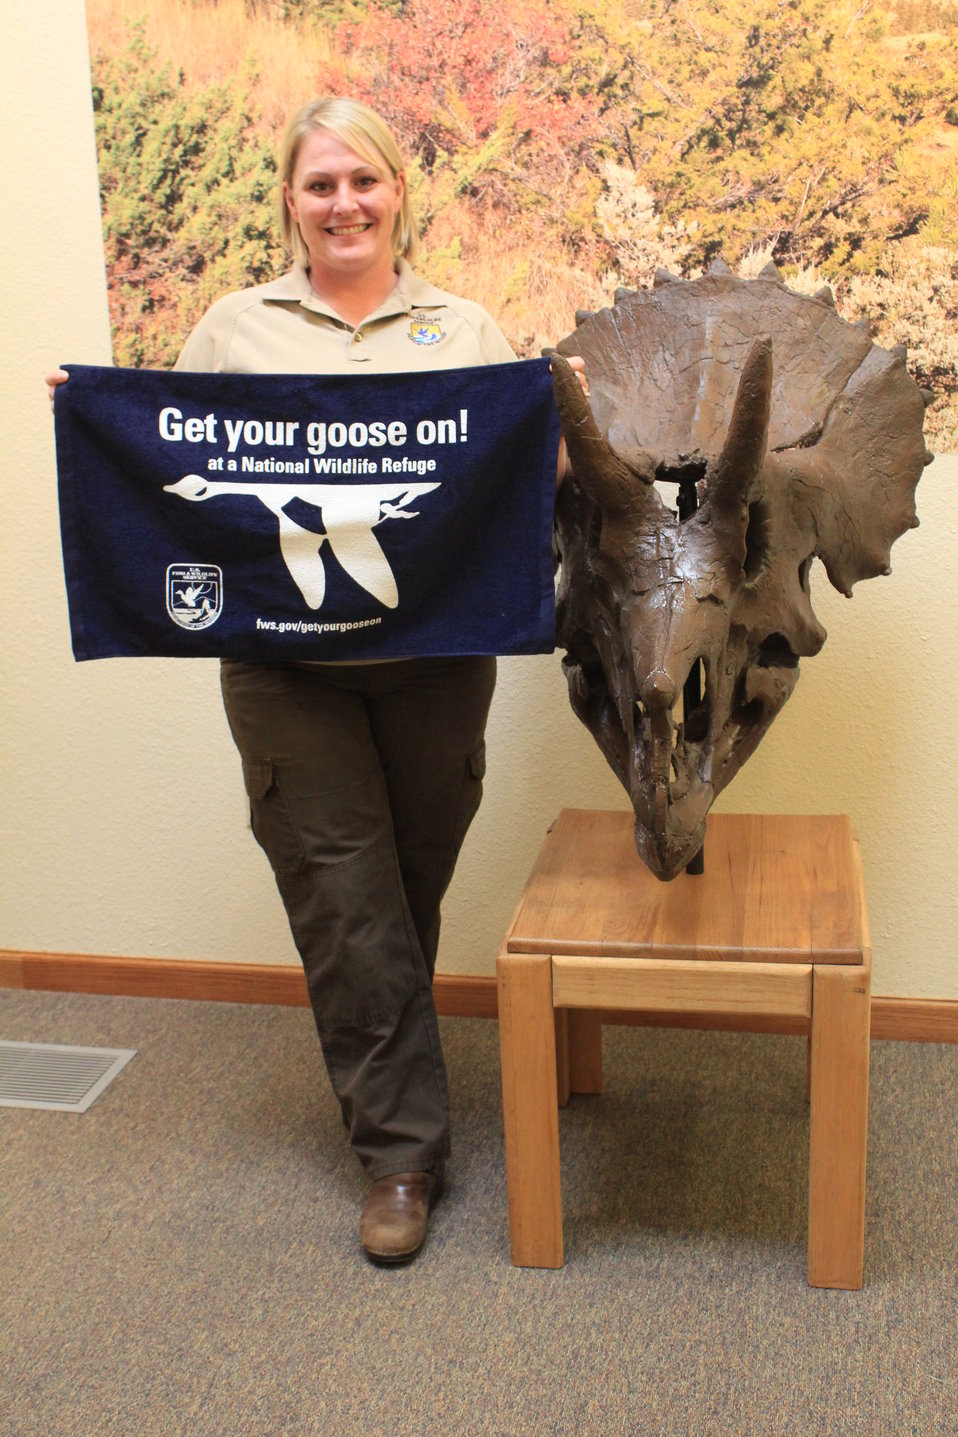 Get Your Goose On! - Triceratops Style